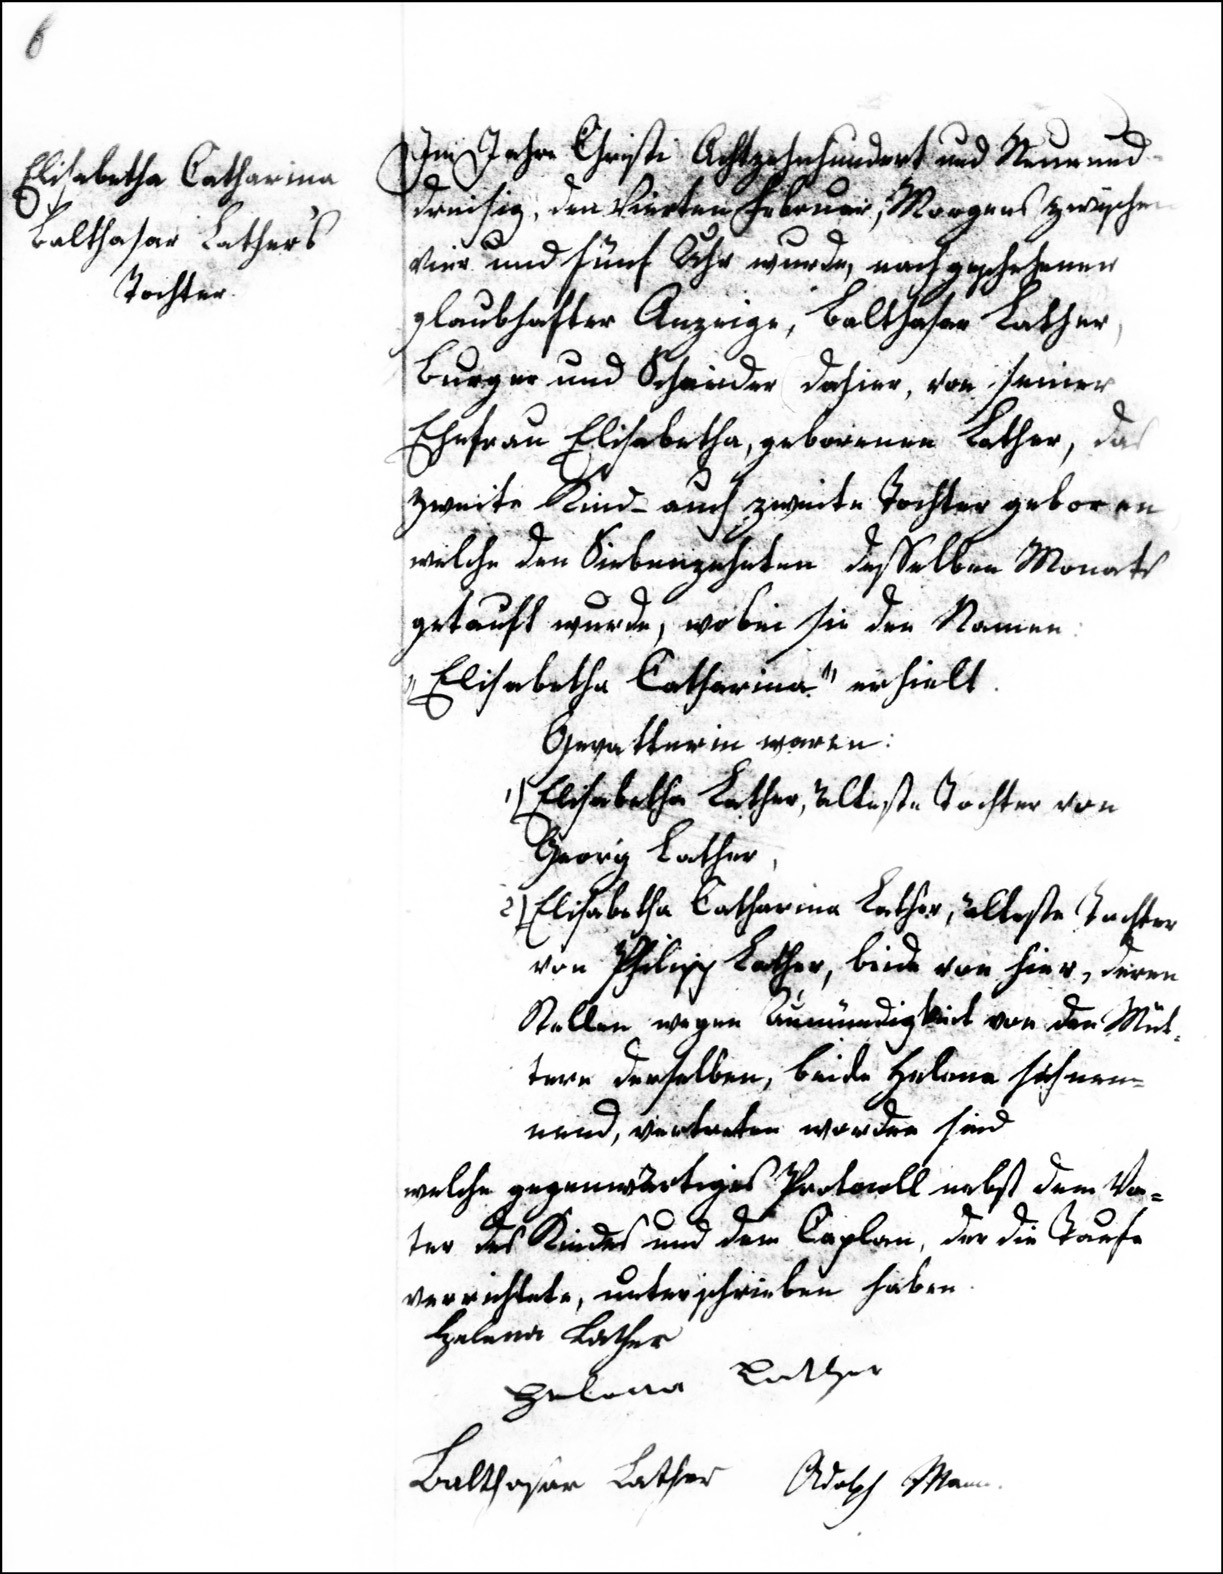 The Birth and Baptismal Record of Elisabetha Catharina Lather - 1839